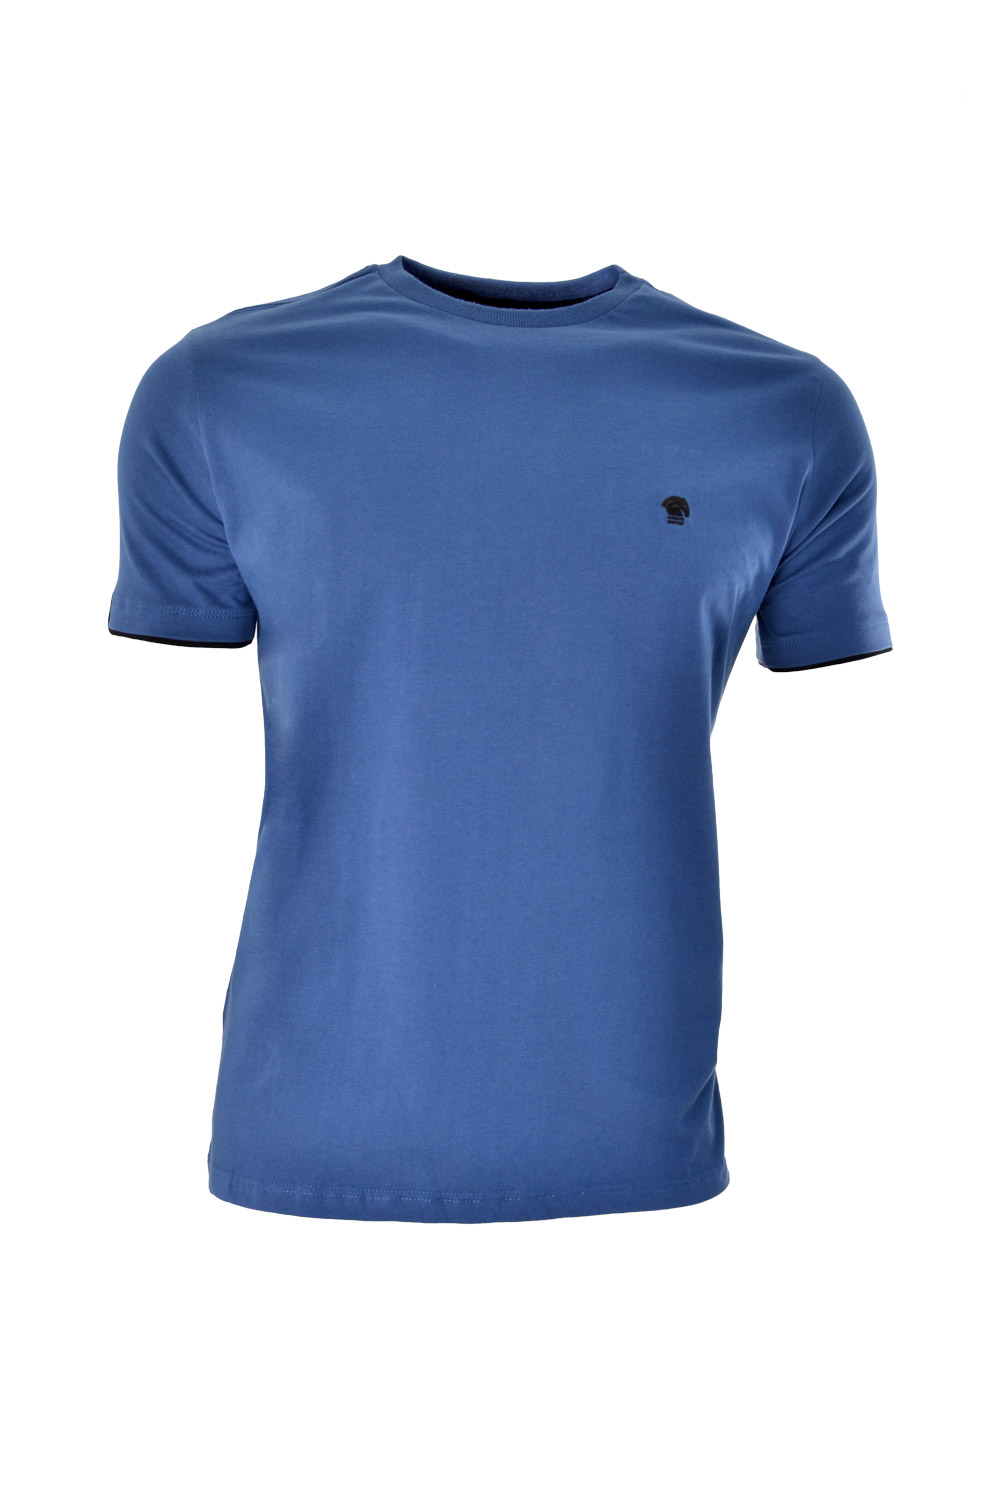 CAMISETA MC BLUES SUPER SLIM ALGODAO GOLA C LISO AZUL MEDIO